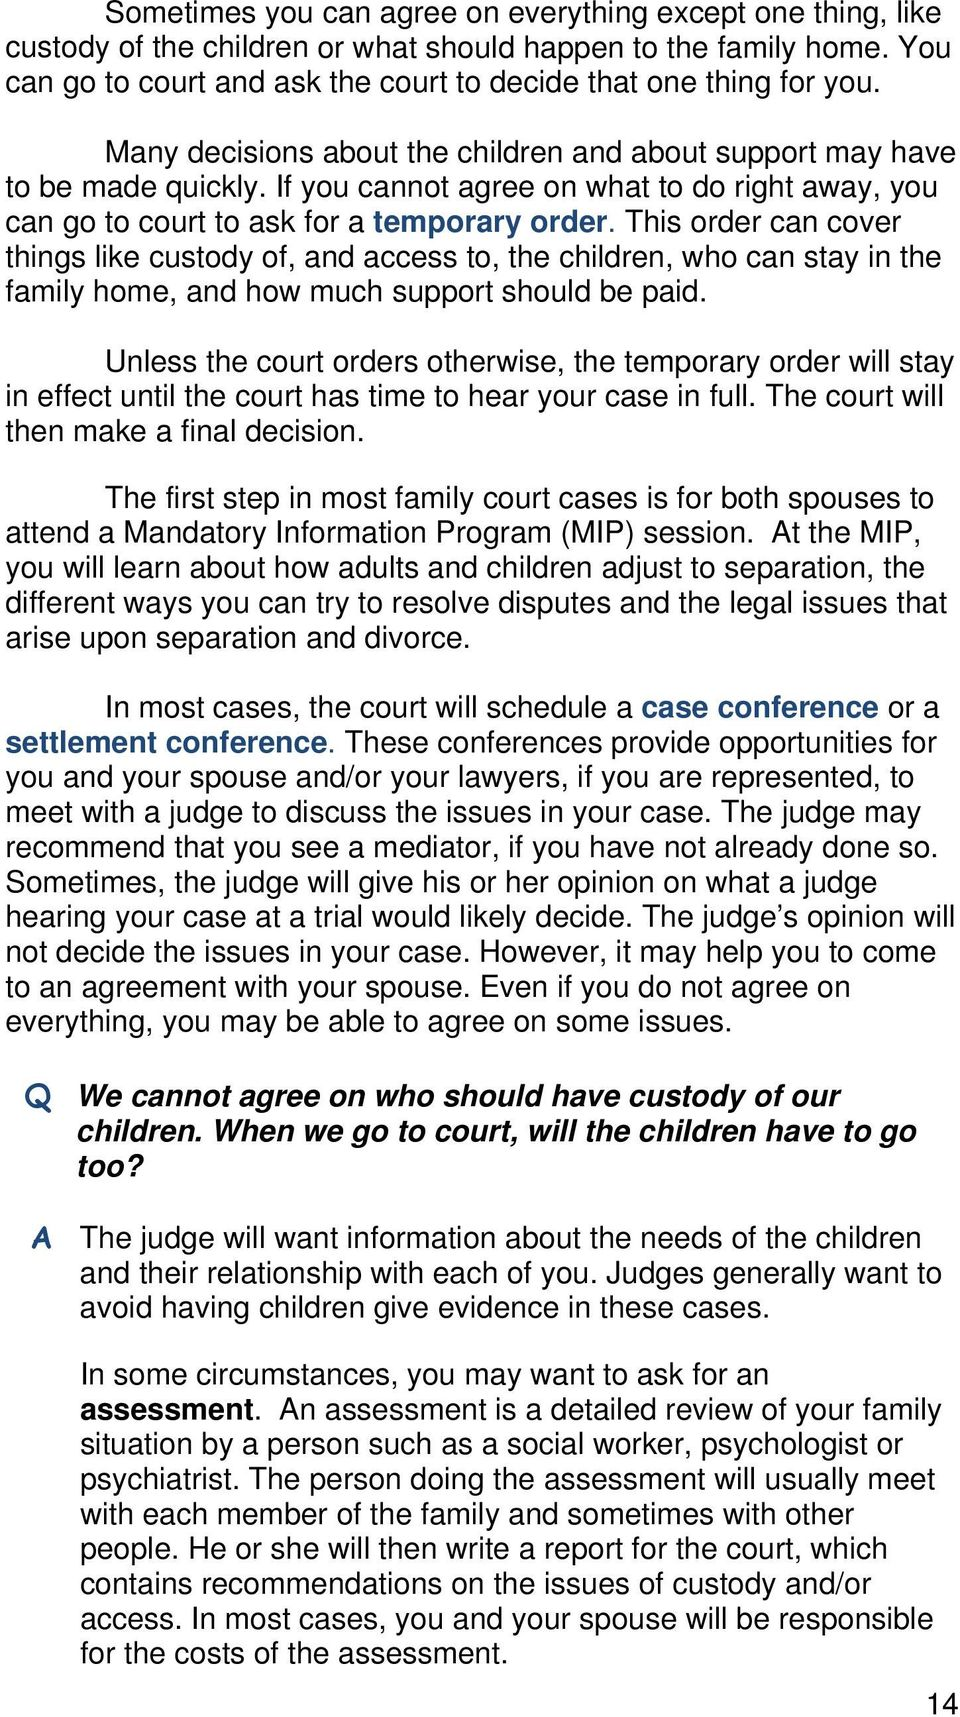 This order can cover things like custody of, and access to, the children, who can stay in the family home, and how much support should be paid.